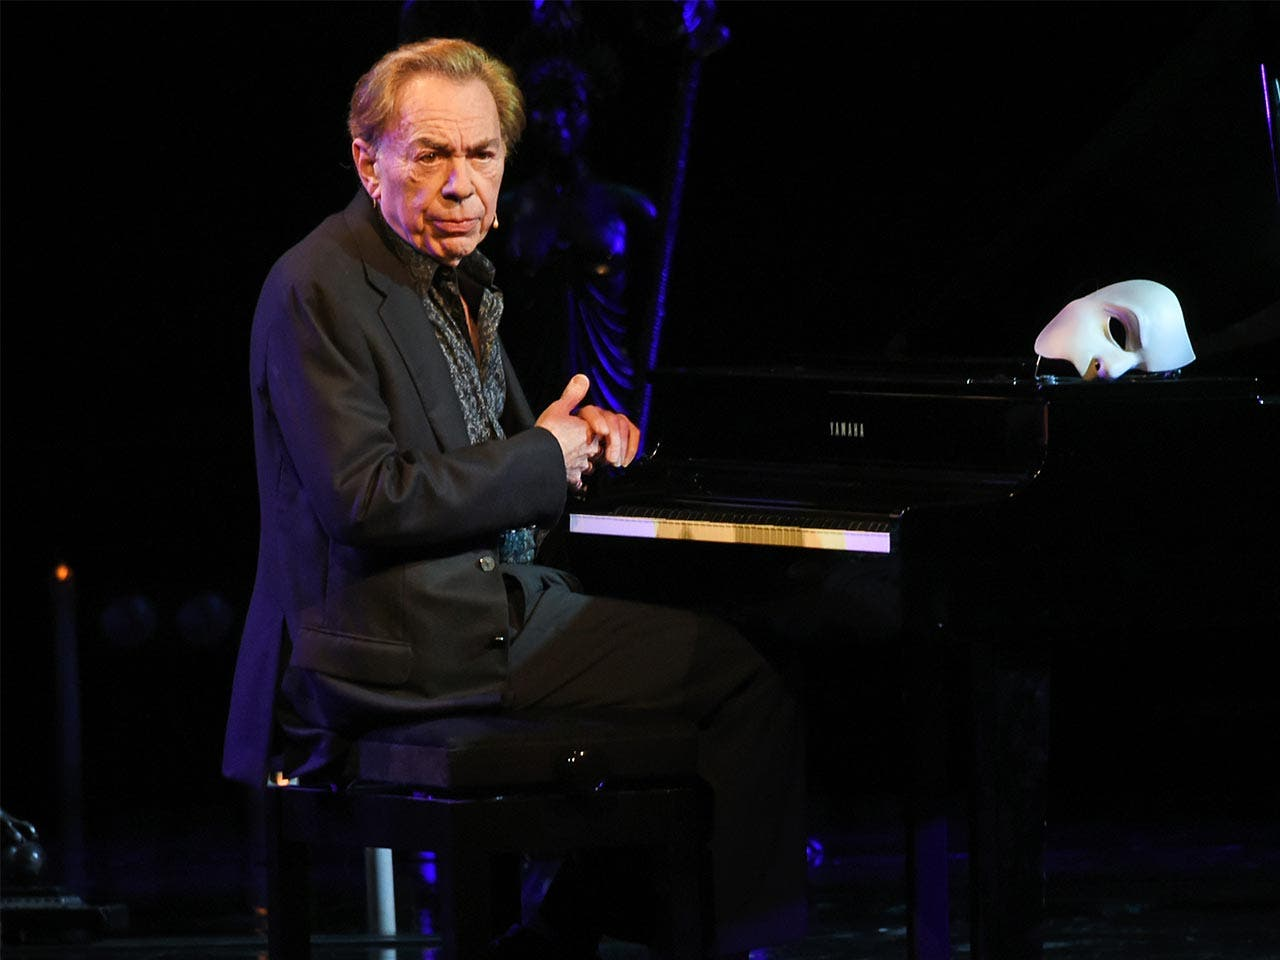 Andrew Lloyd Webber | David M. Benett/Getty Images